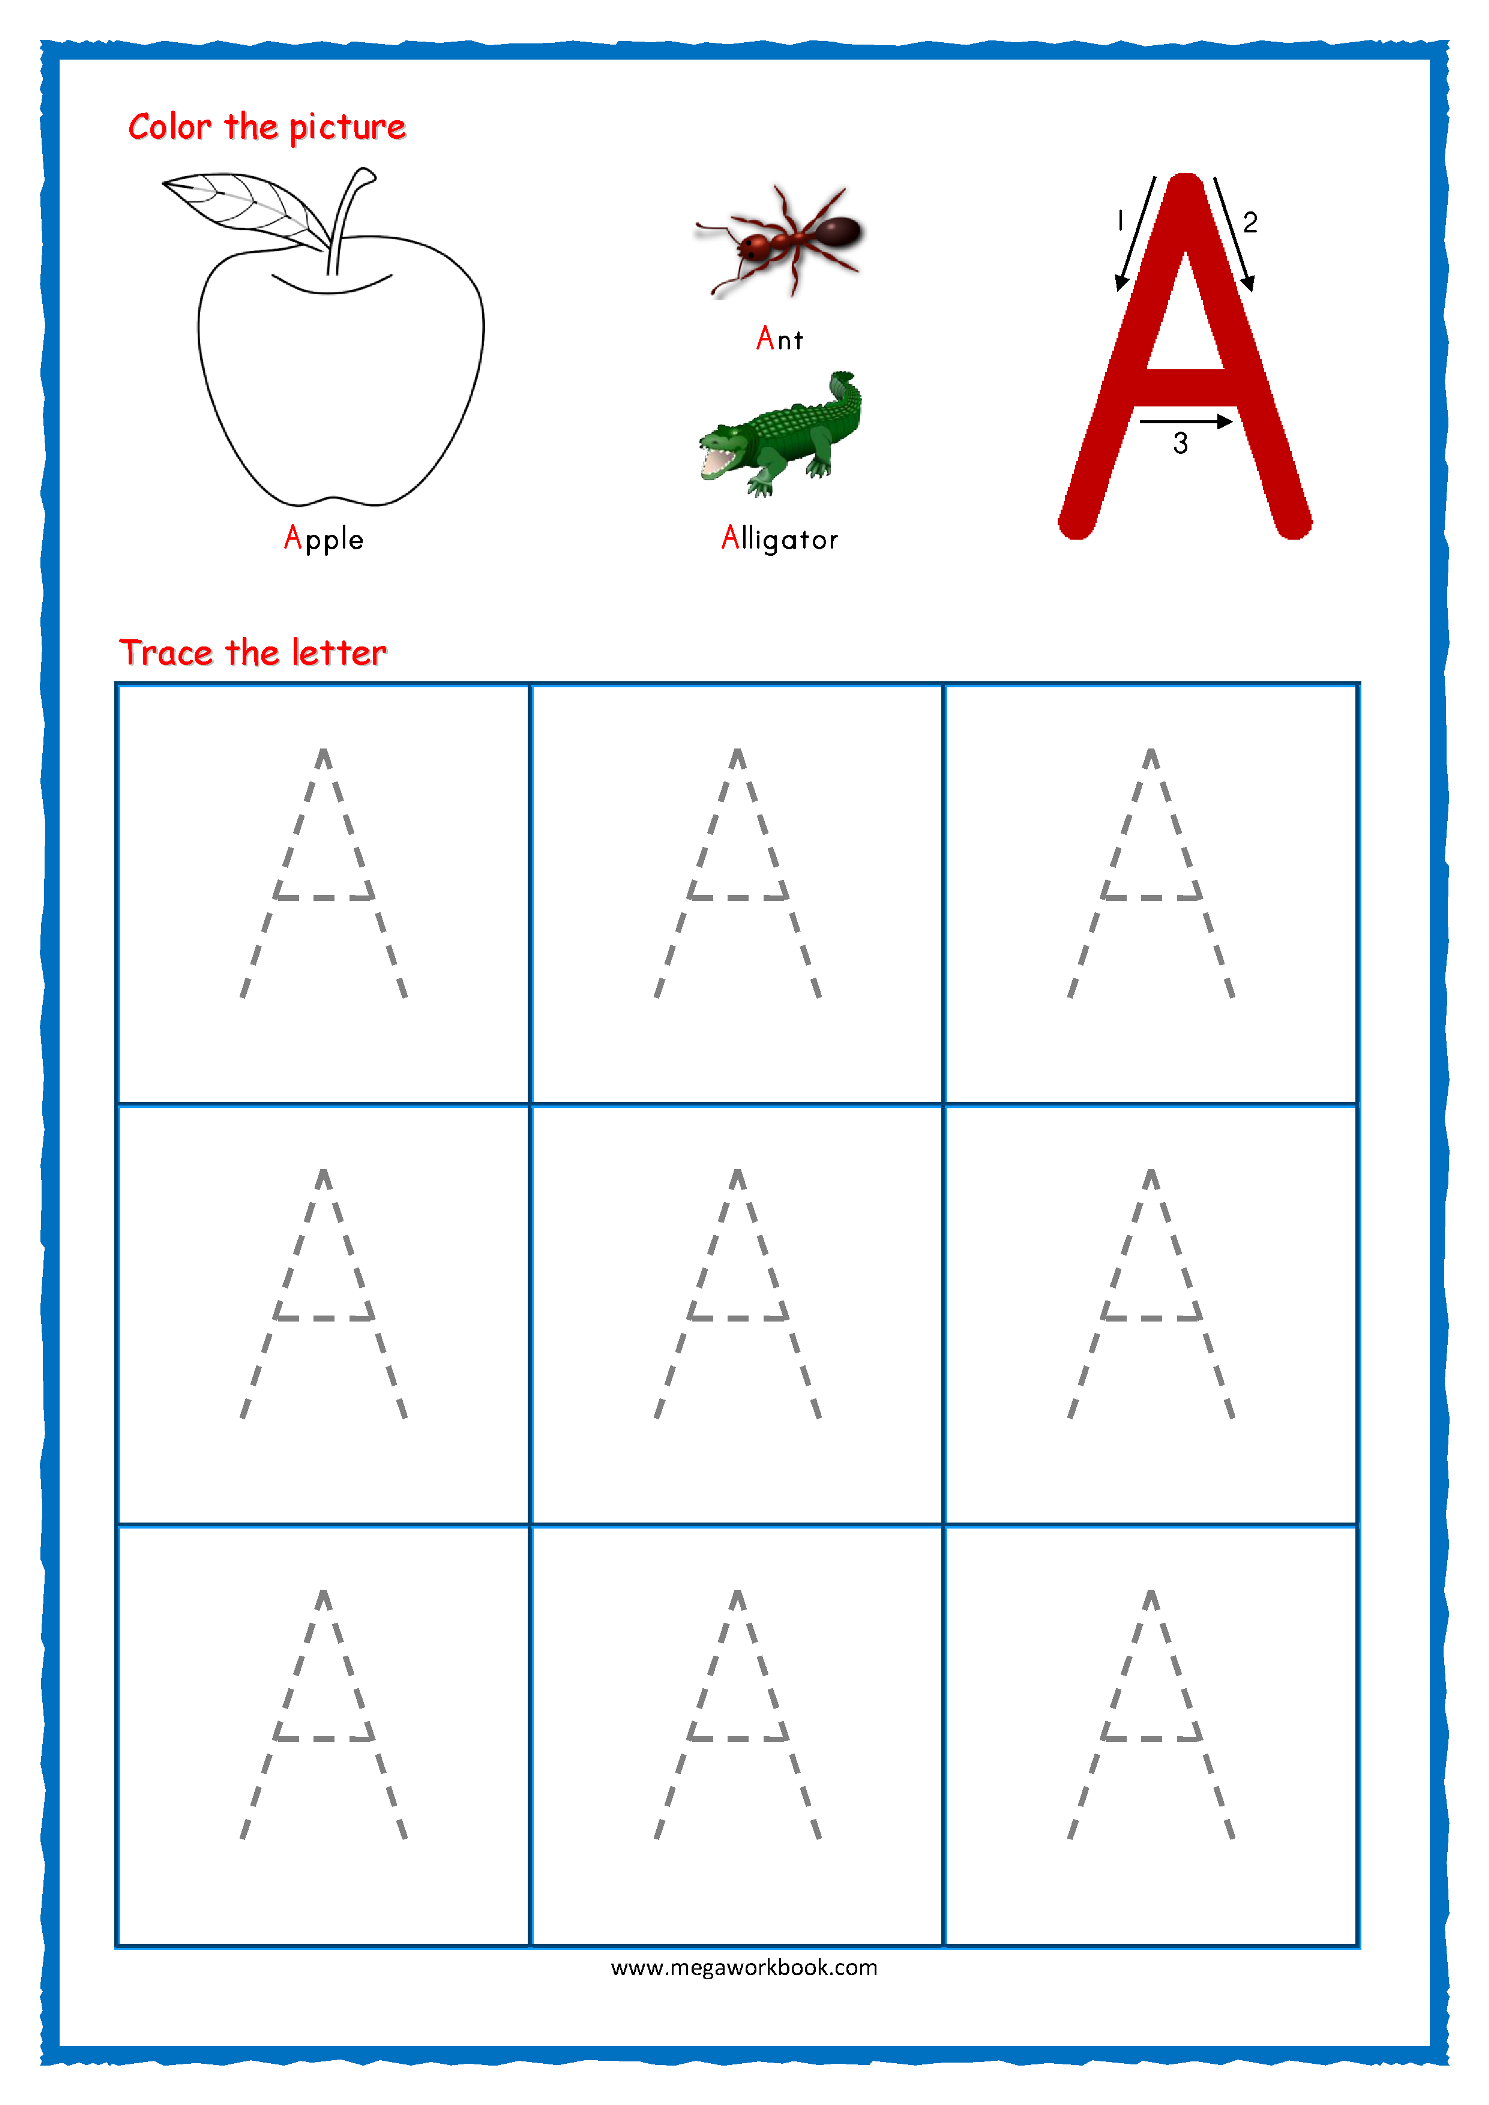 Coloring Book : Coloring Book Alphabet Tracing Worksheets throughout Free Printable Tracing Letters